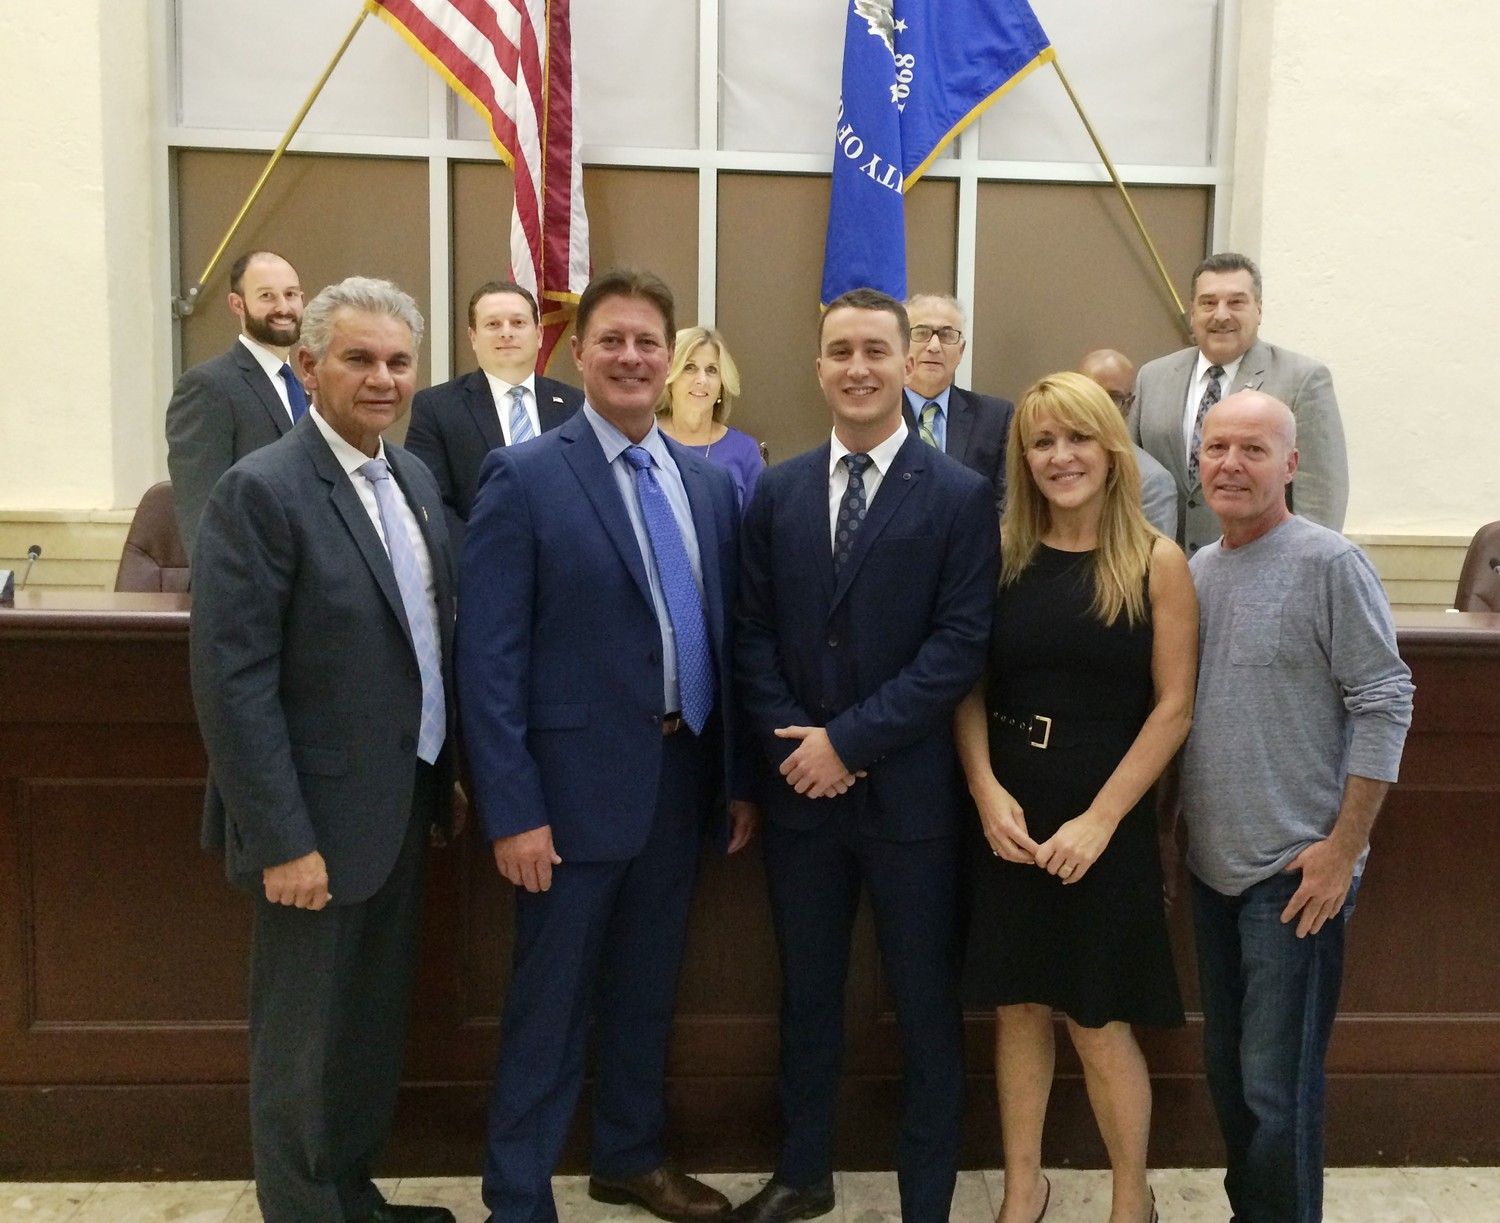 Mayor Reggie Spinello, far left, GCPD Chief William Whitton, and the City Council, welcomed new Glen Cove Police Recruit Marcello Zuccaro, front center, to the department, along with his parents Antonia and Giuseppe.